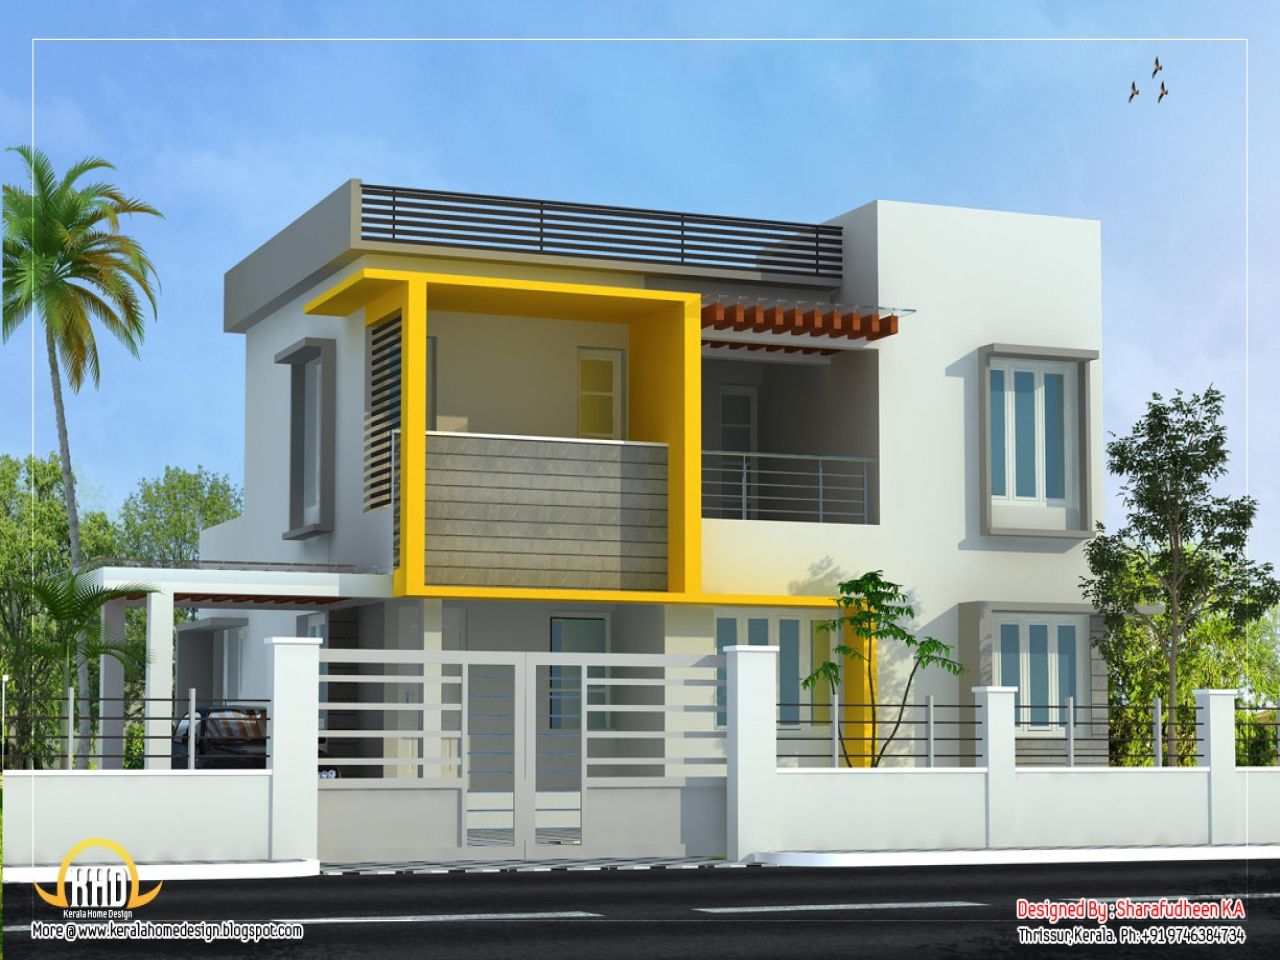 Architecture modern house designs home modern house design for New duplex home designs